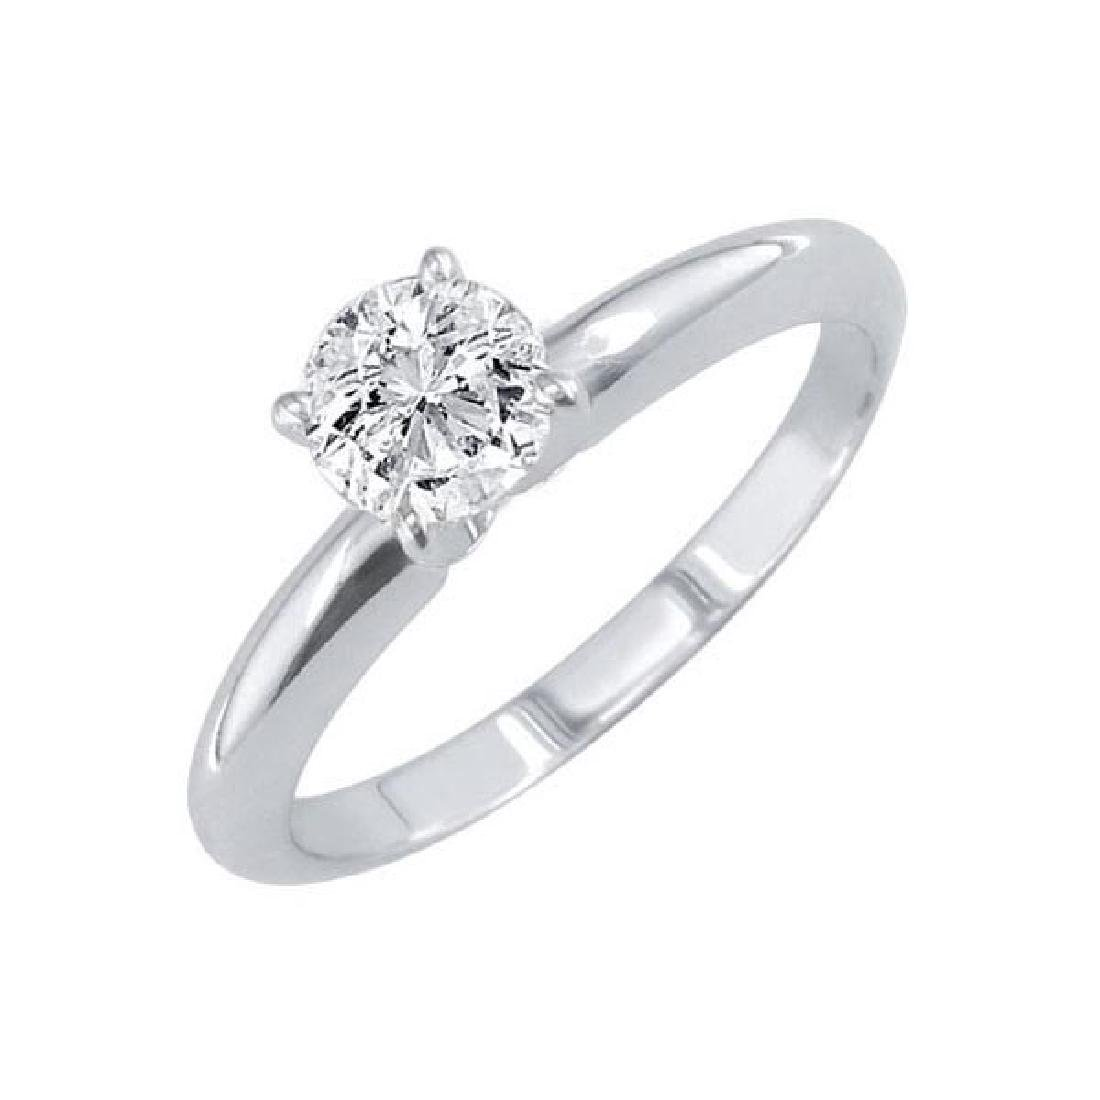 Certified 1.19 CTW Round Diamond Solitaire 14k Ring D/S